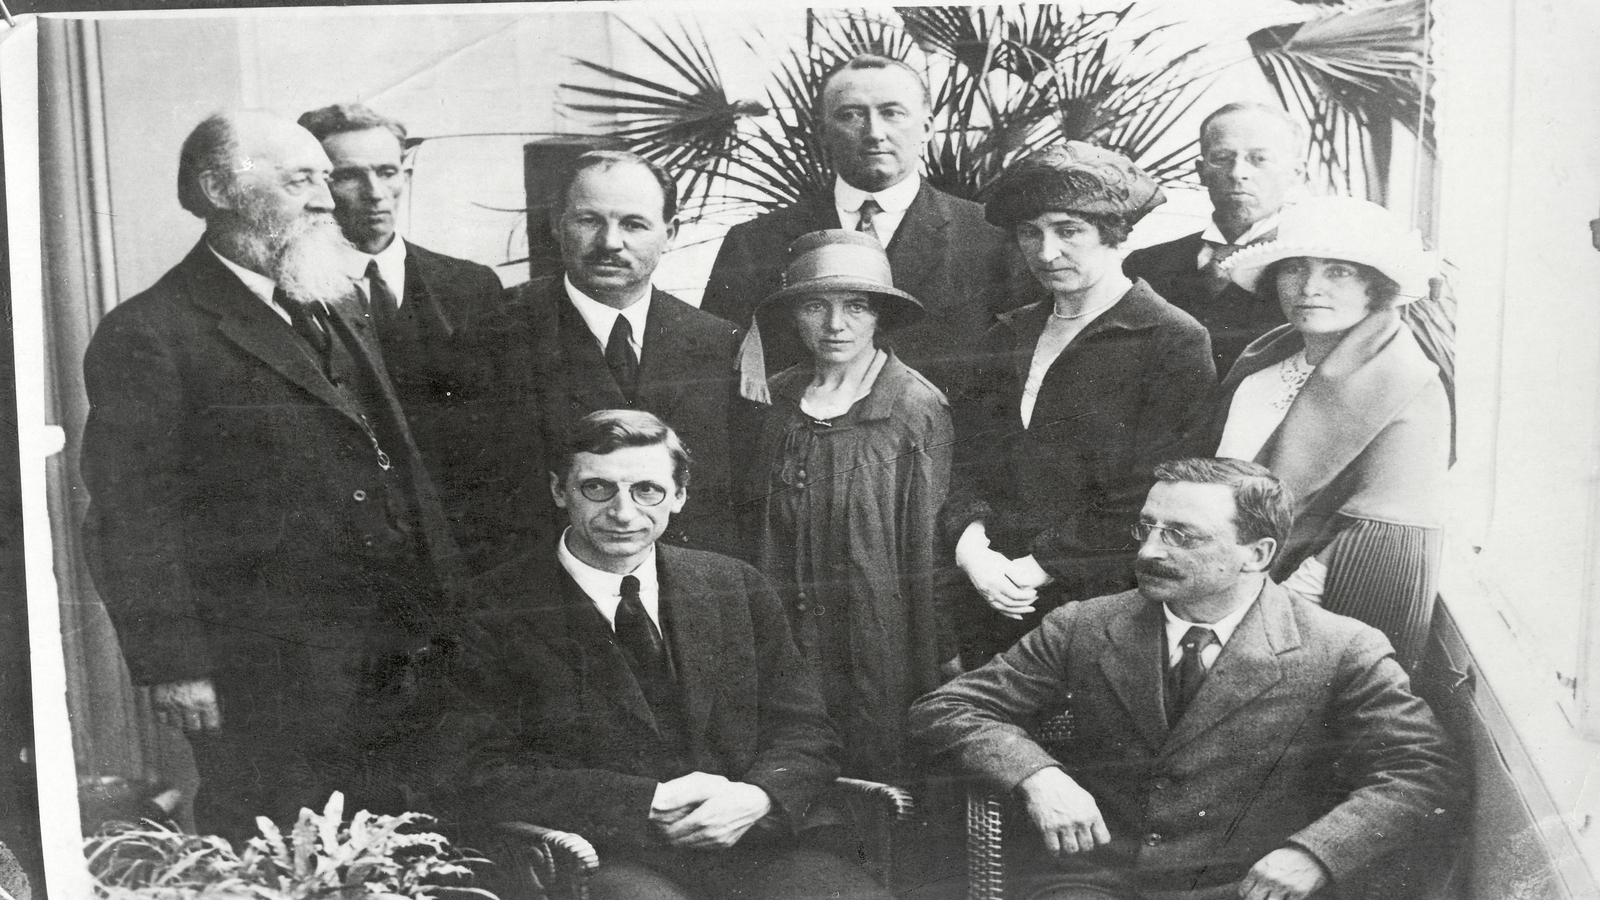 Image - Eamon de Valera, Arthur Griffith and the delegation in London for the first talks with Prime Minister David Lloyd George, just a few days after the declaration of the Truce. (Credit: National Library of Ireland)